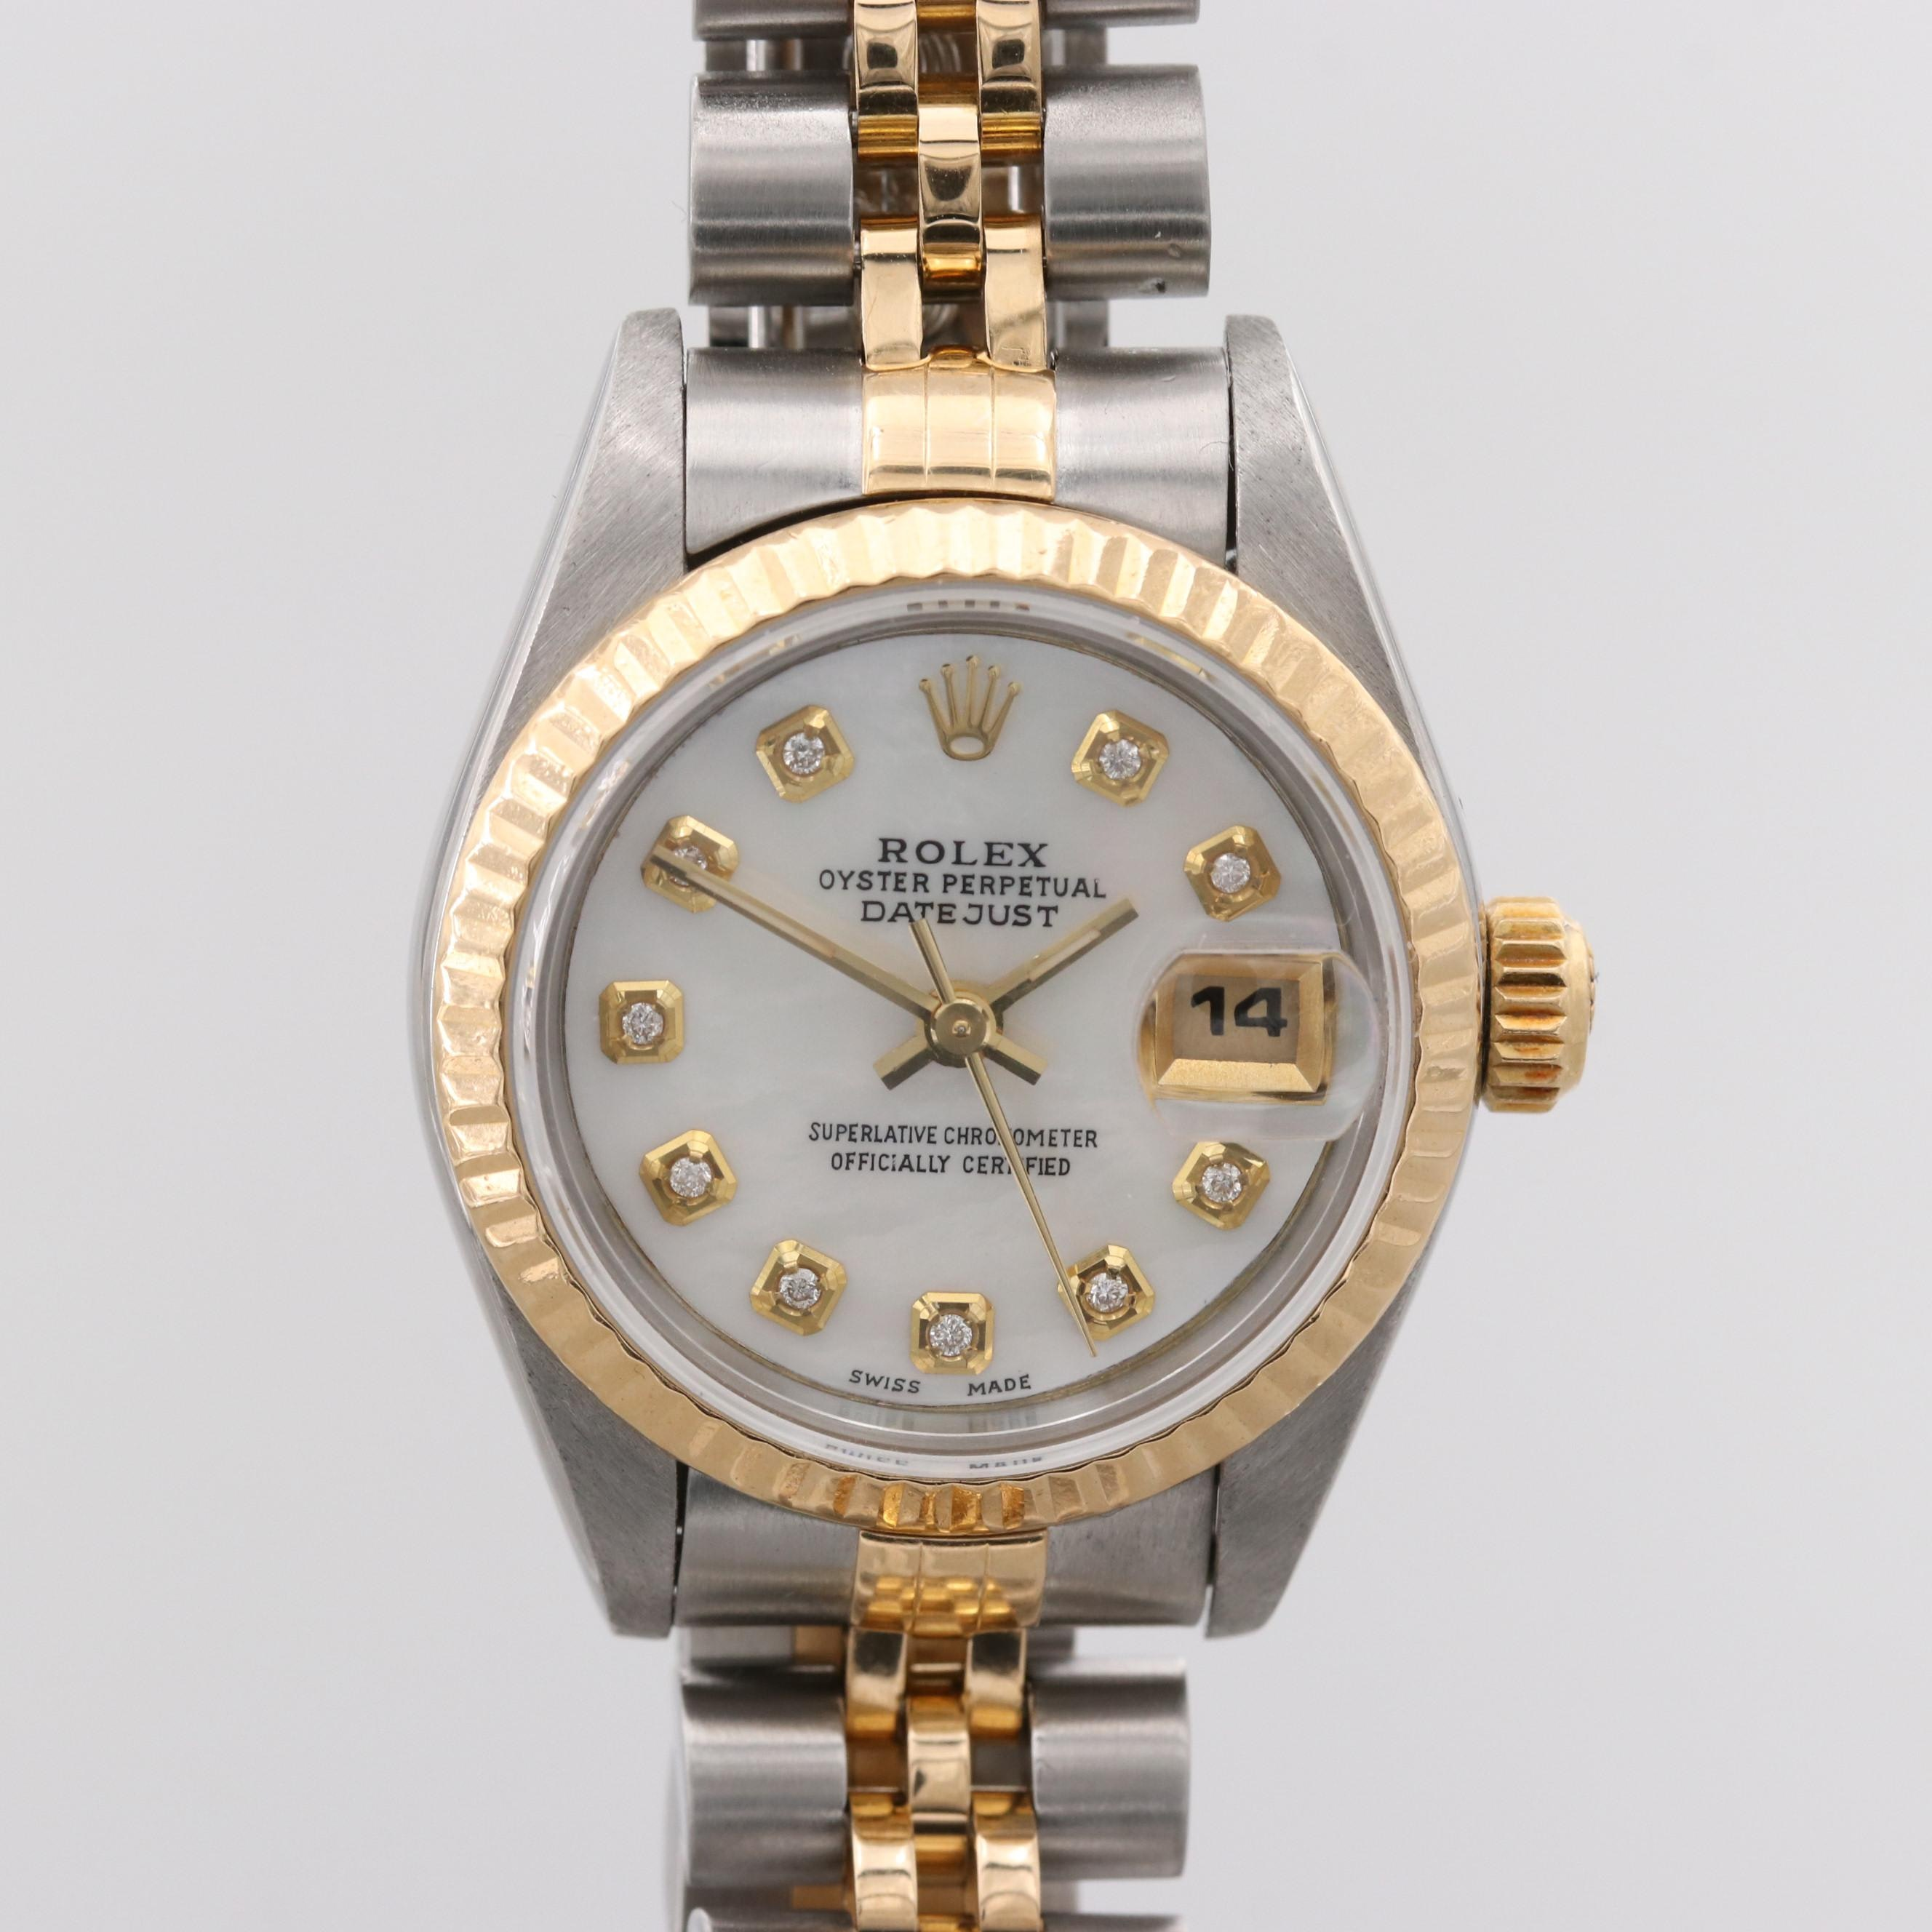 Vintage Rolex Datejust Wristwatch With Mother of Pearl and Diamond Dial